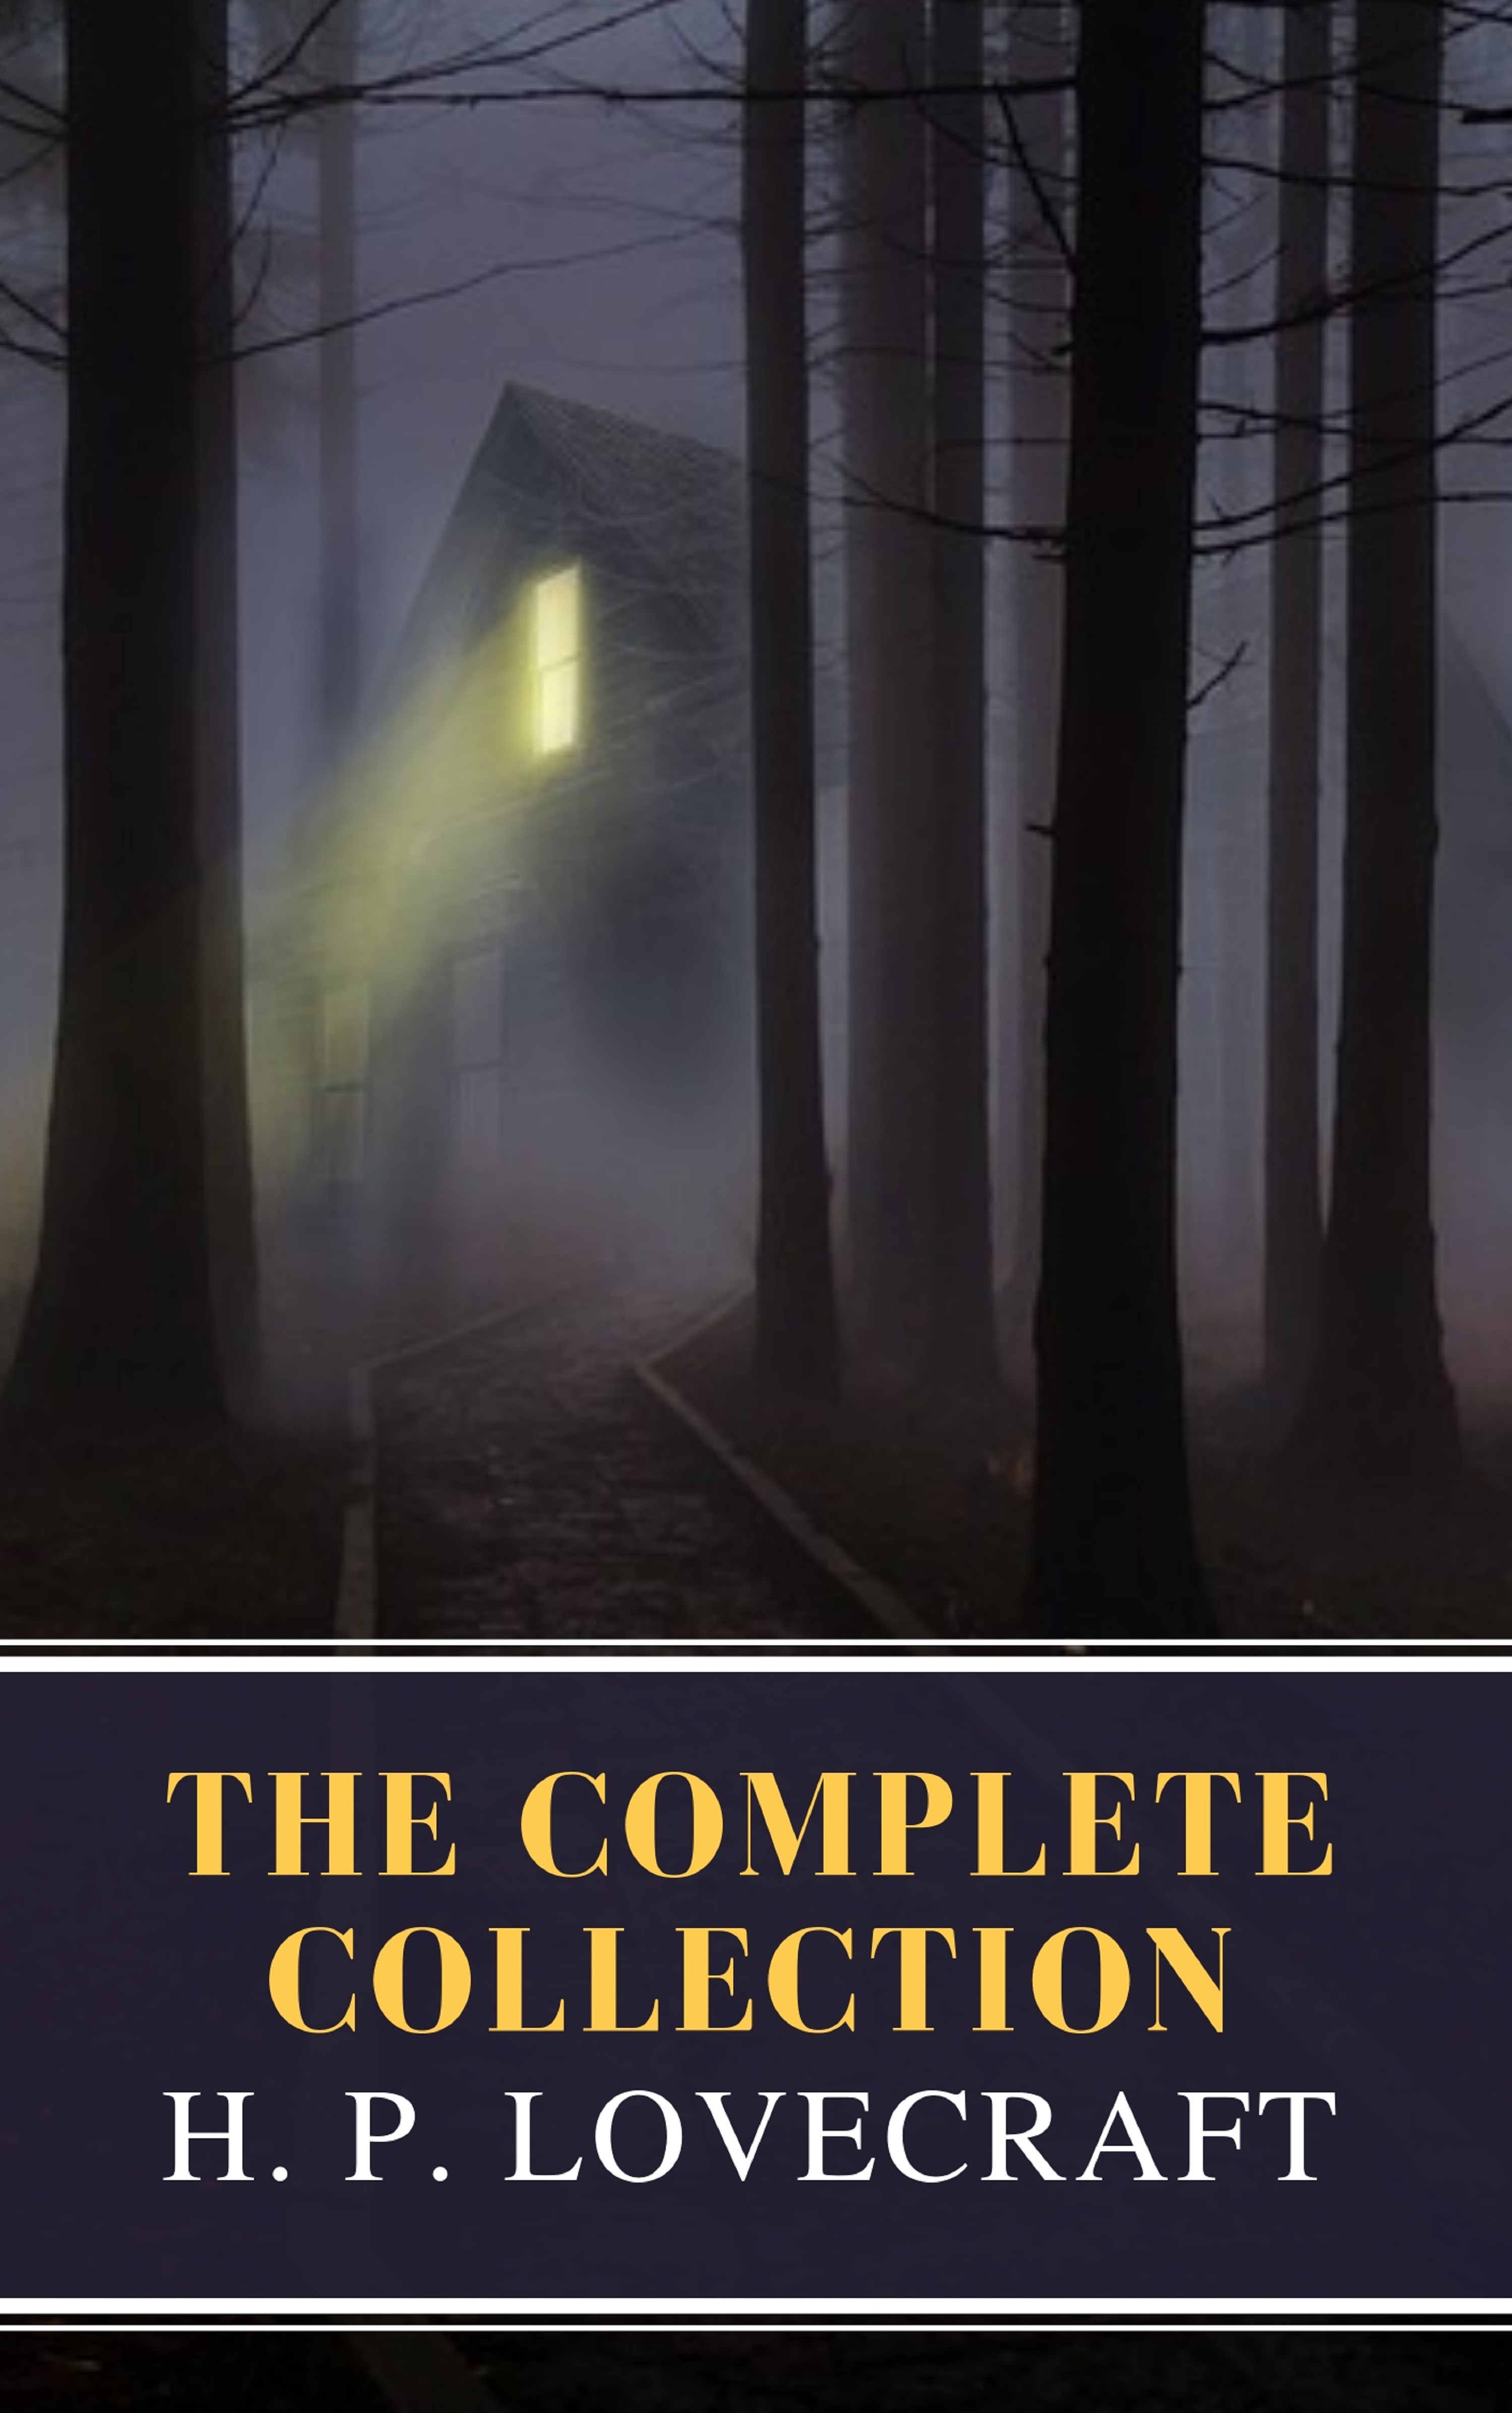 Говард Филлипс Лавкрафт The Complete Collection of H. P. Lovecraft